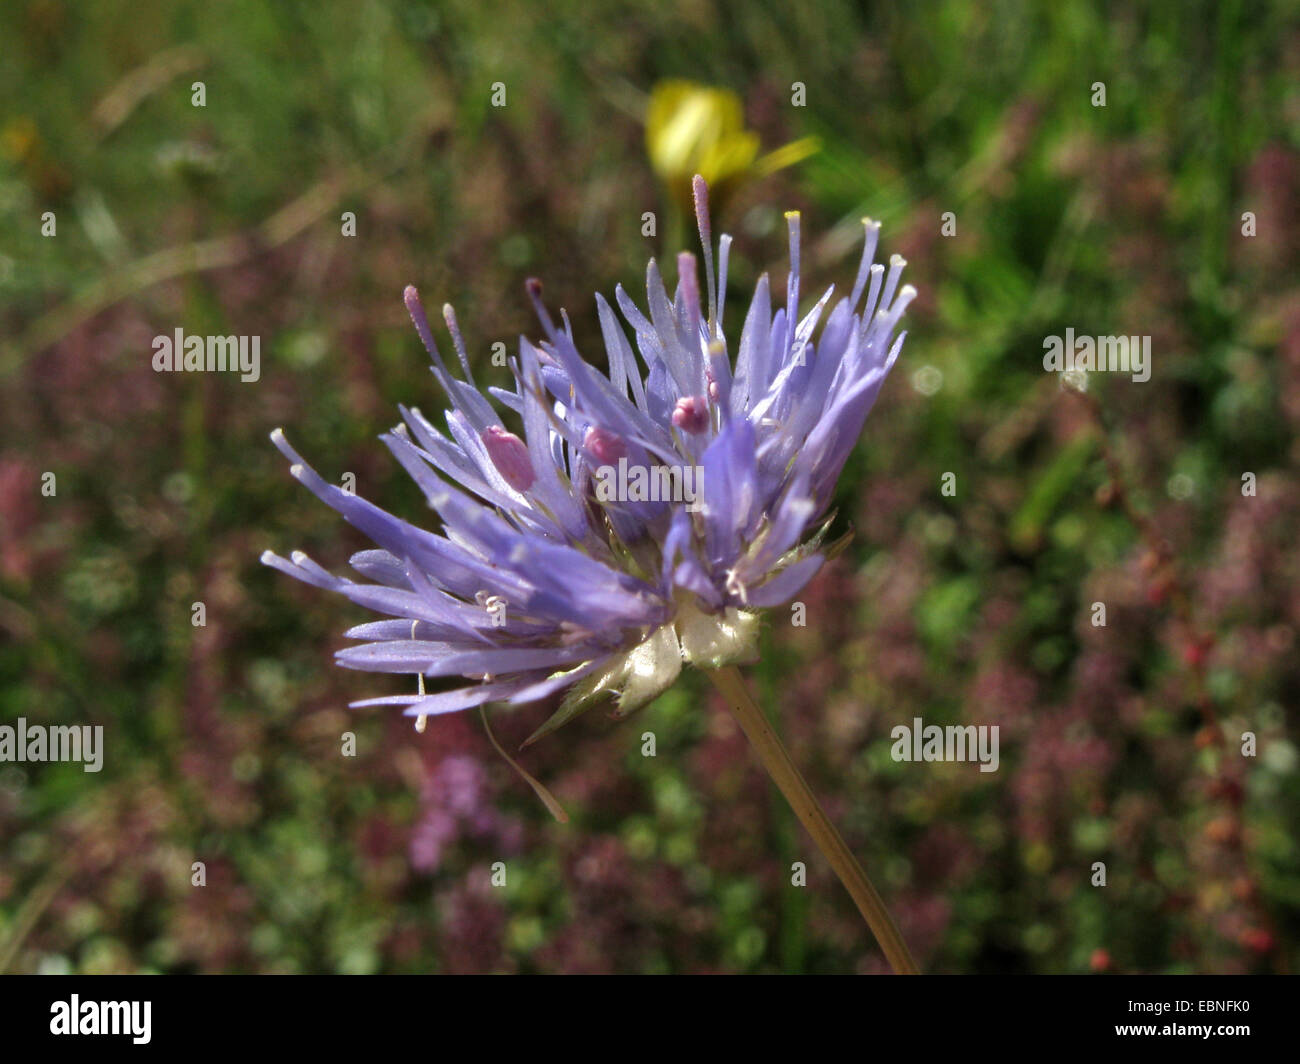 sheep's-bit, sheep's scabious (Jasione montana), inflorescence, Germany, North Rhine-Westphalia - Stock Image